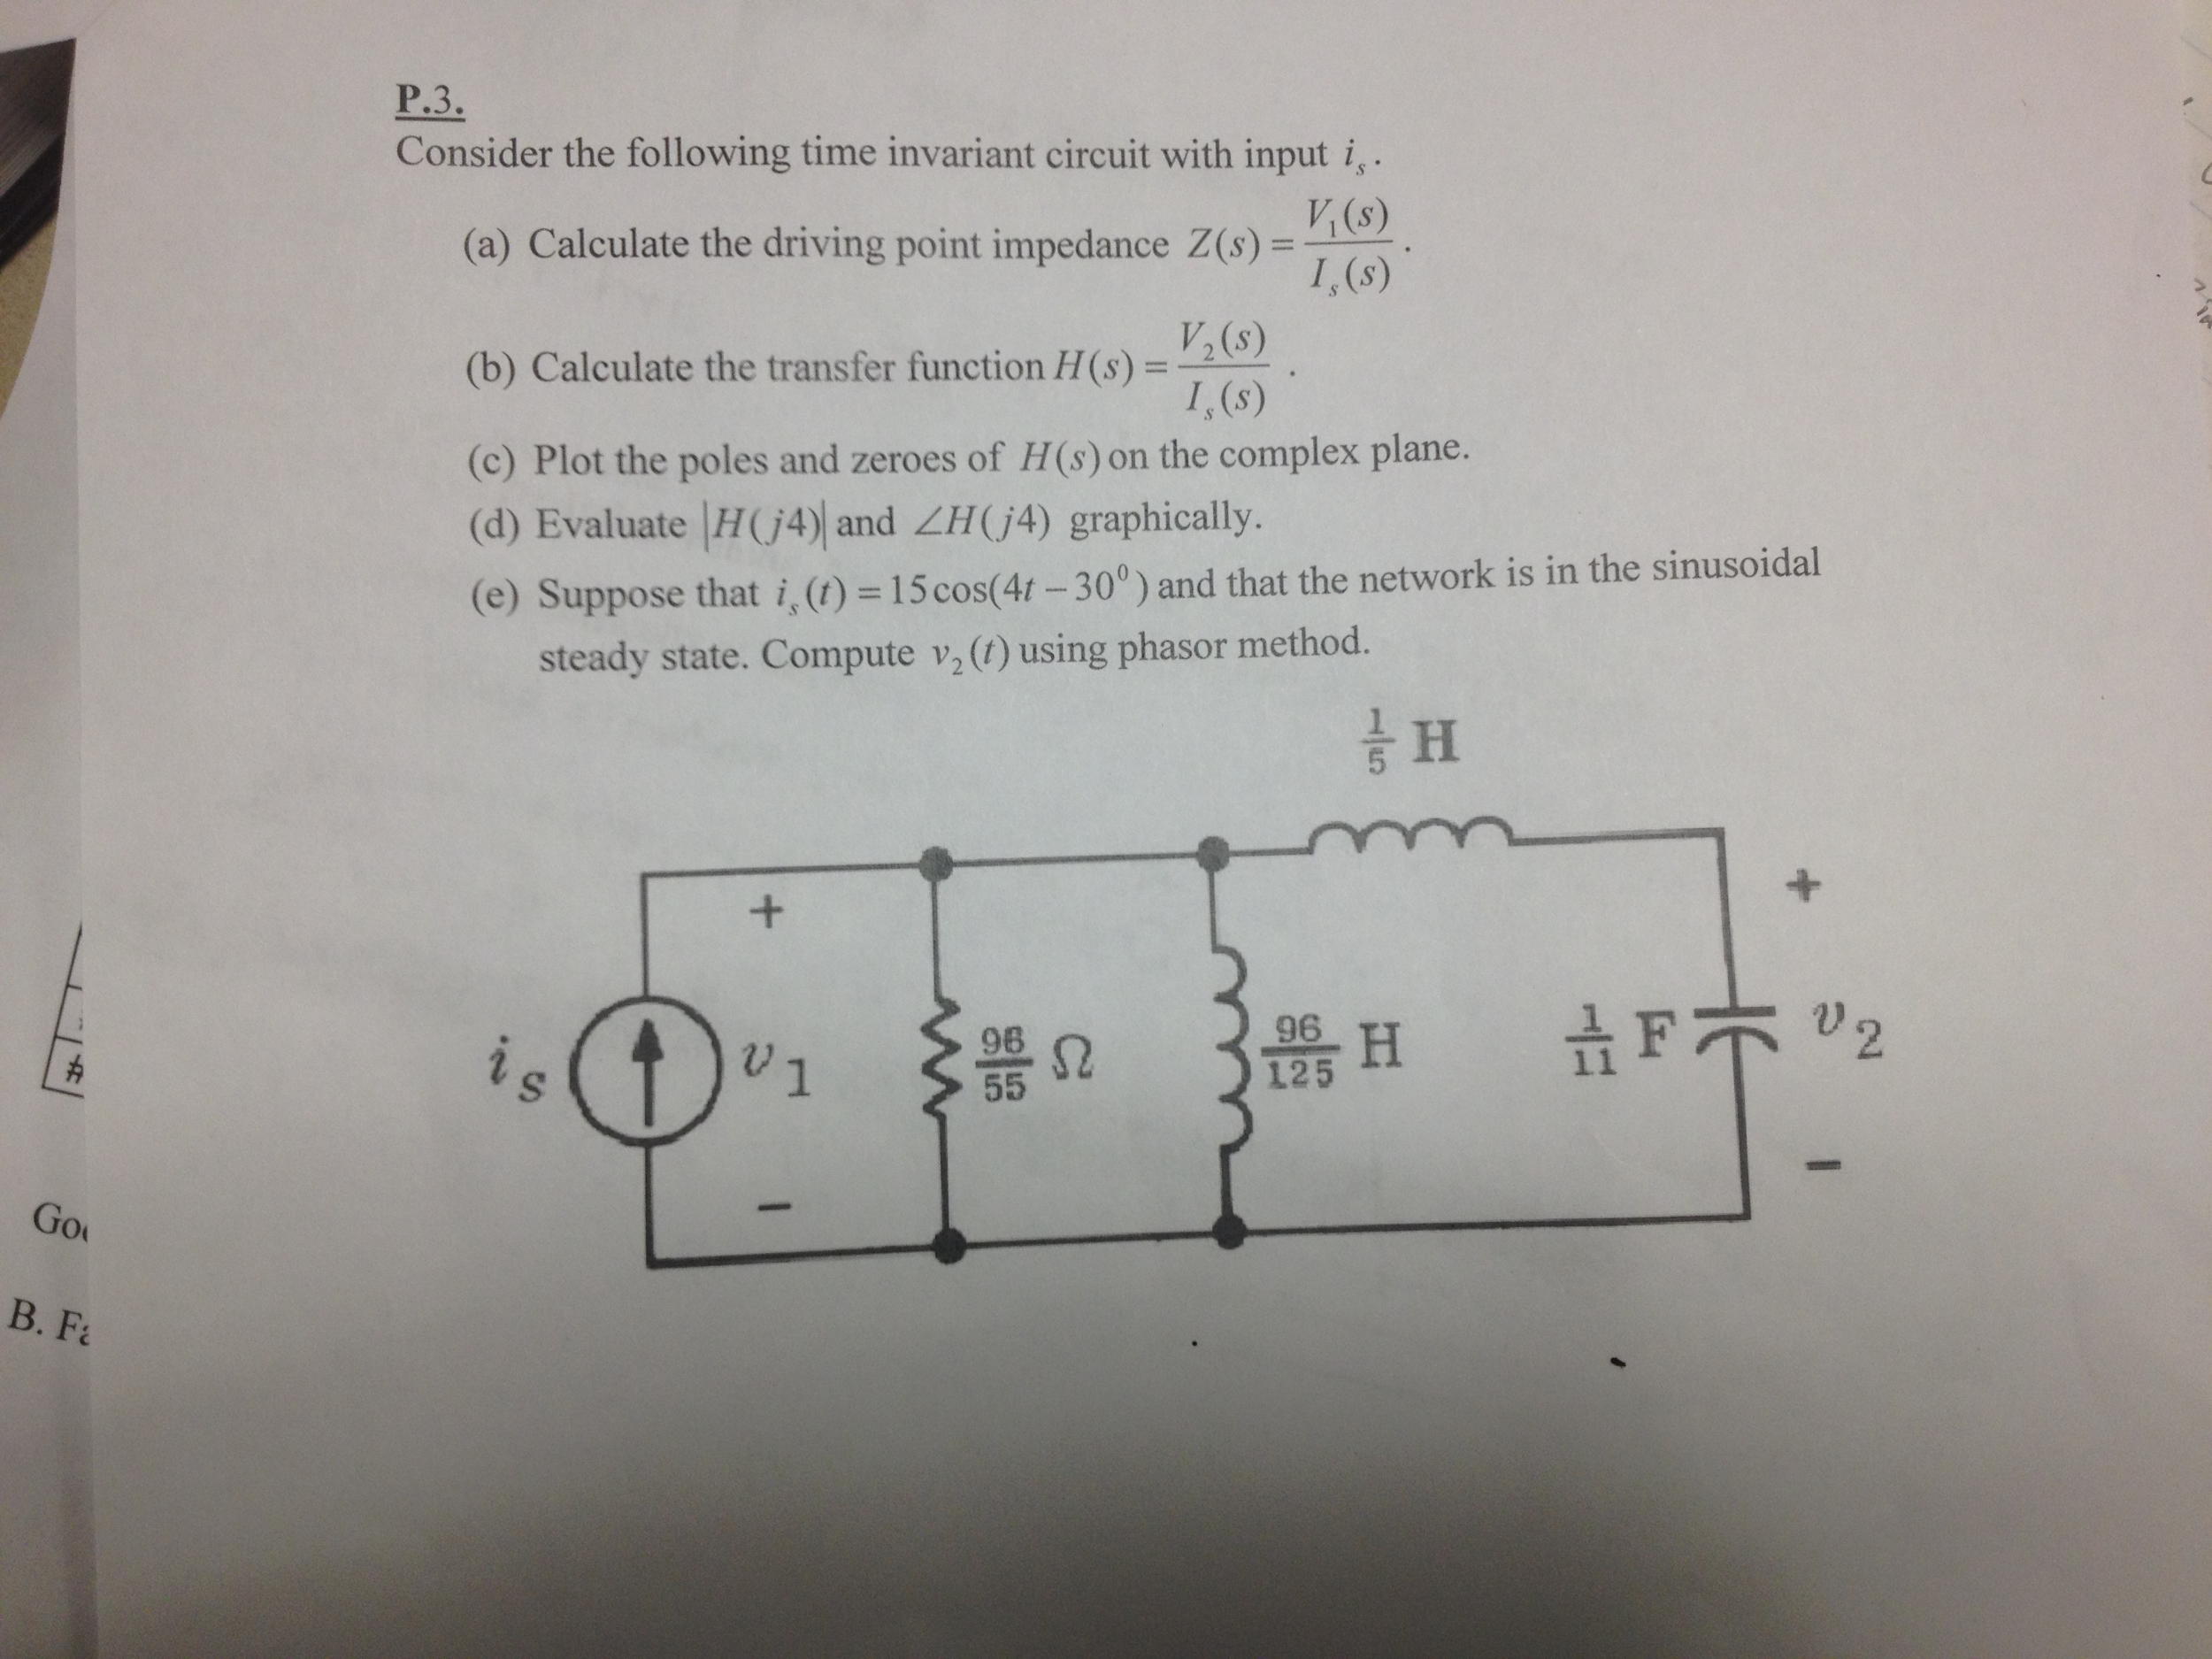 Can you please help me find the answer to the circ